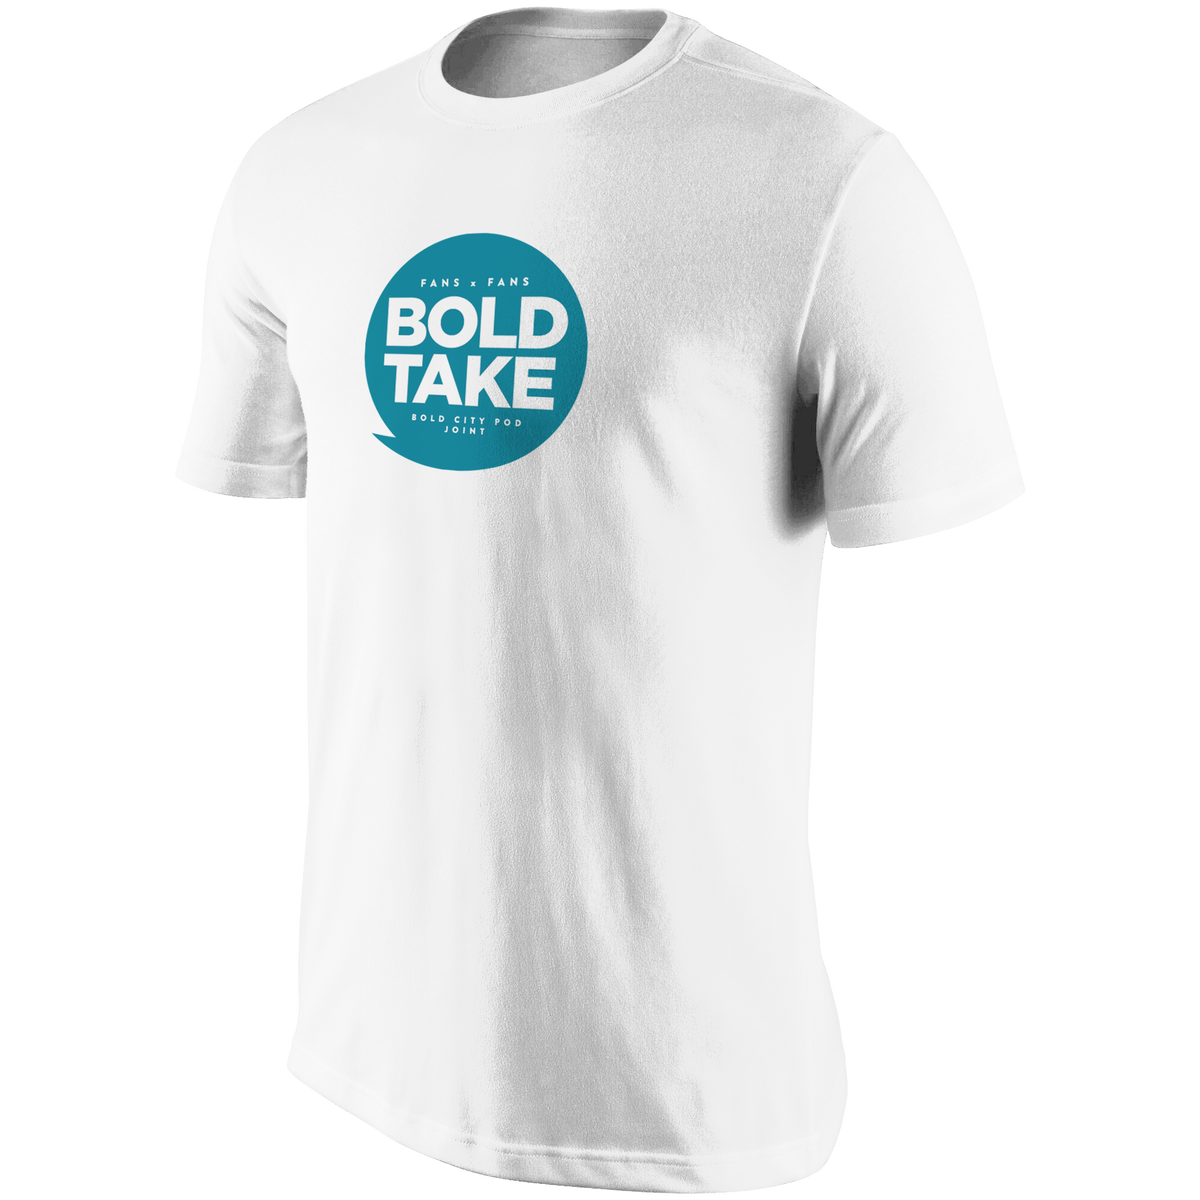 Image of Bold Take tee